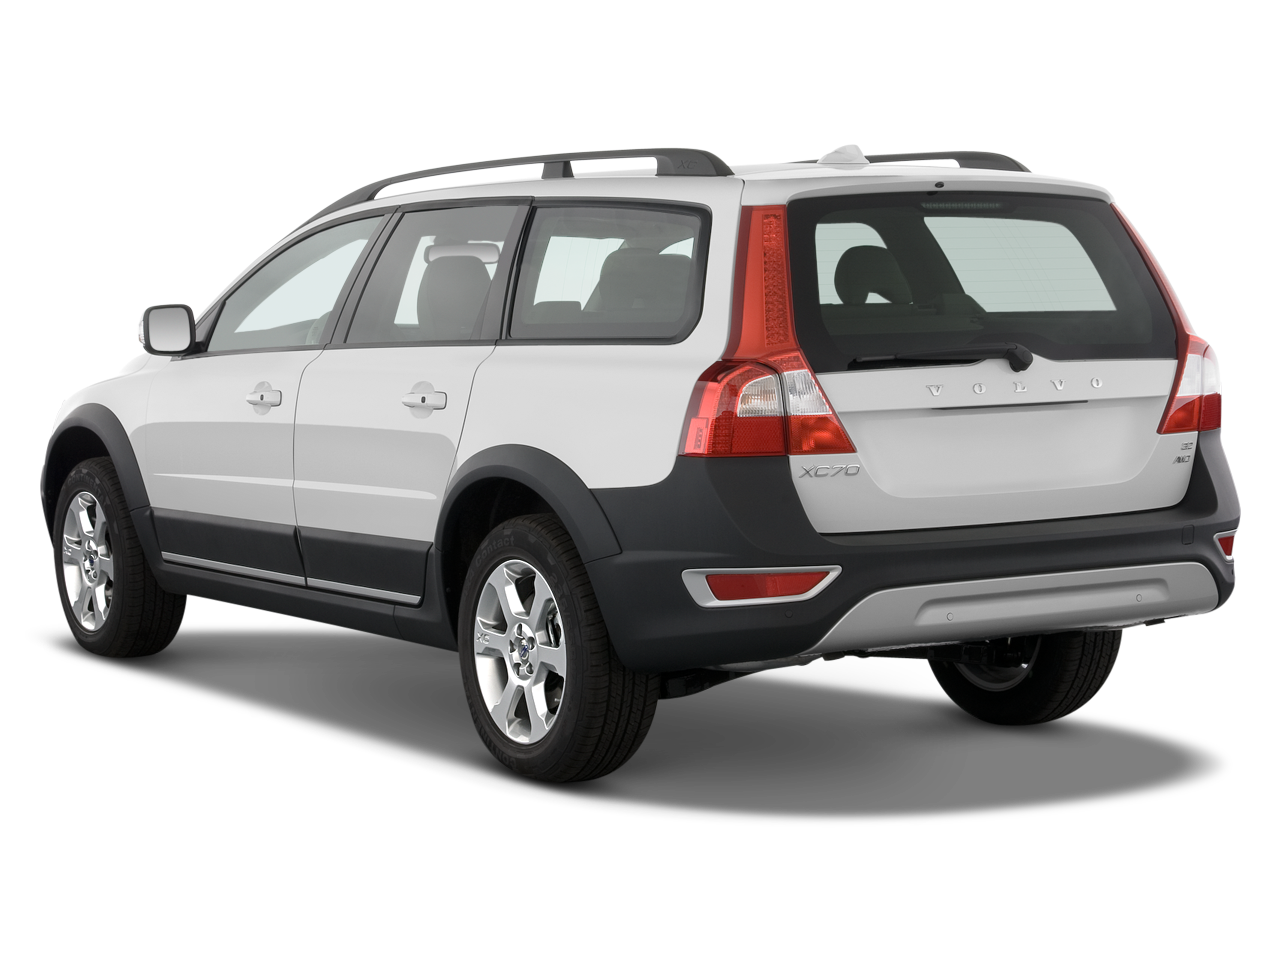 Preview: 2008 Volvo V70/XC70 - Latest News, Features, and Reviews - Automobile Magazine